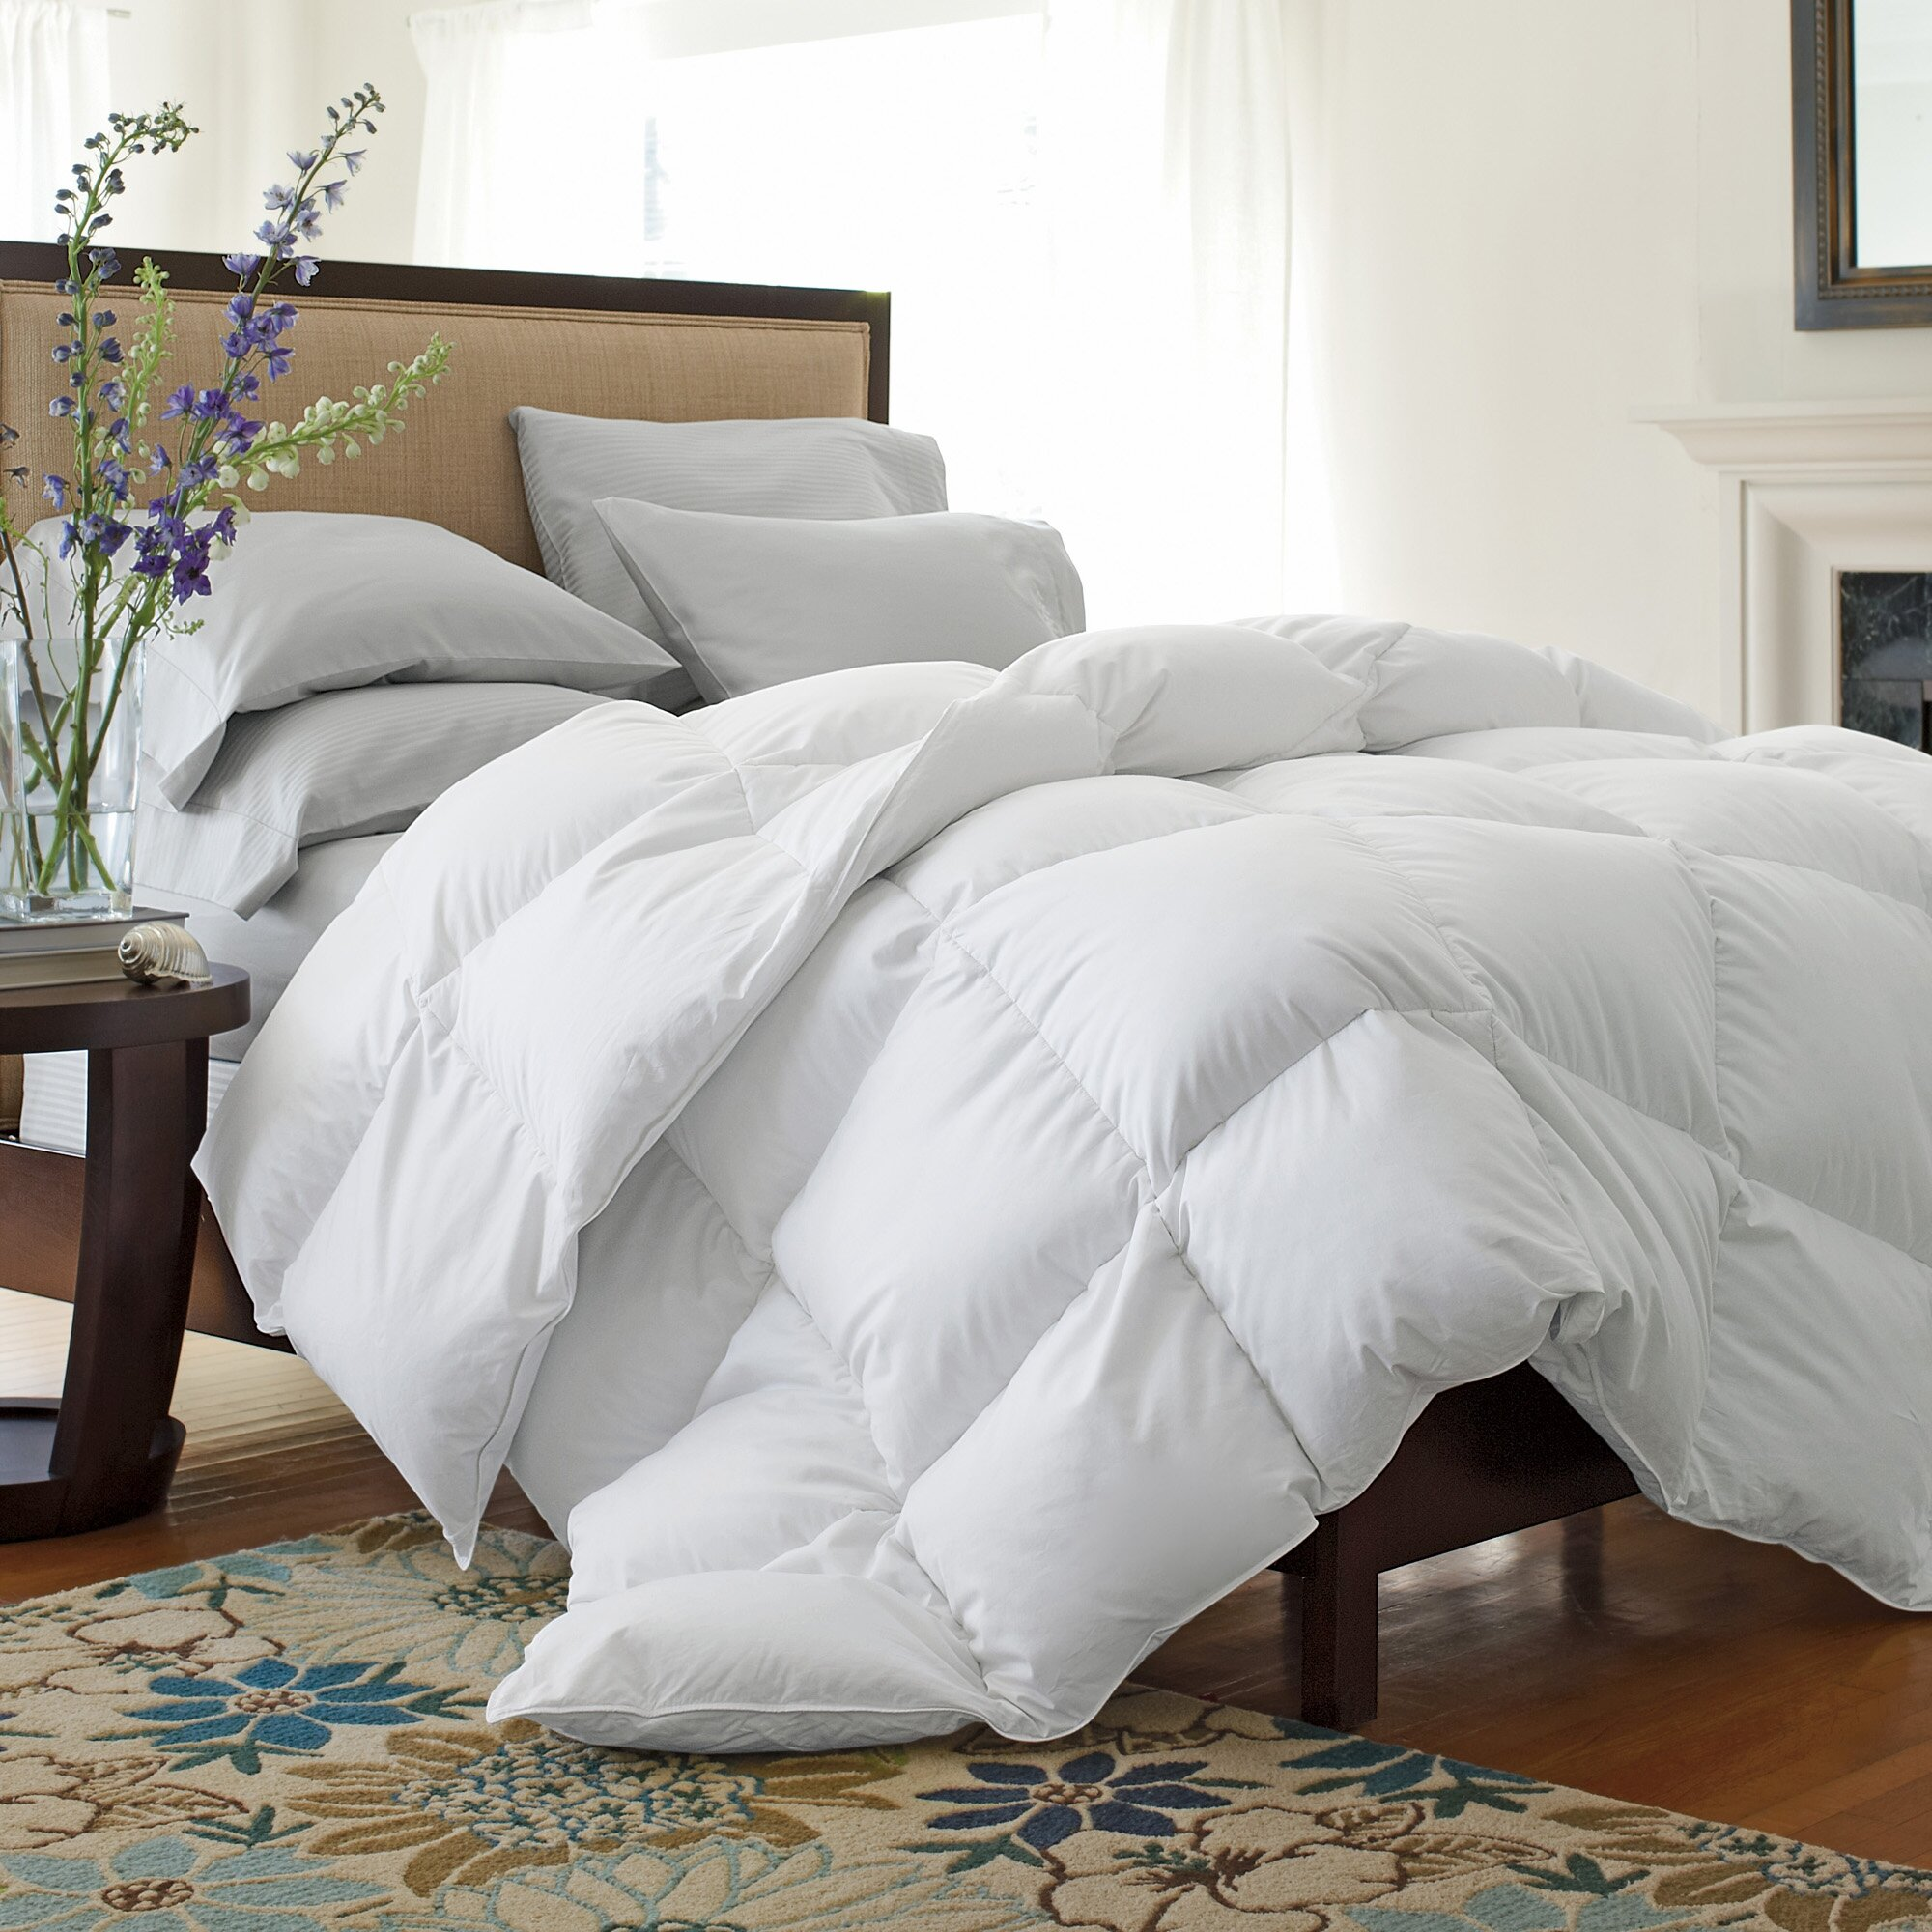 goose product bedding white bath shipping overstock free fill today colored eddie down power bauer comforter king